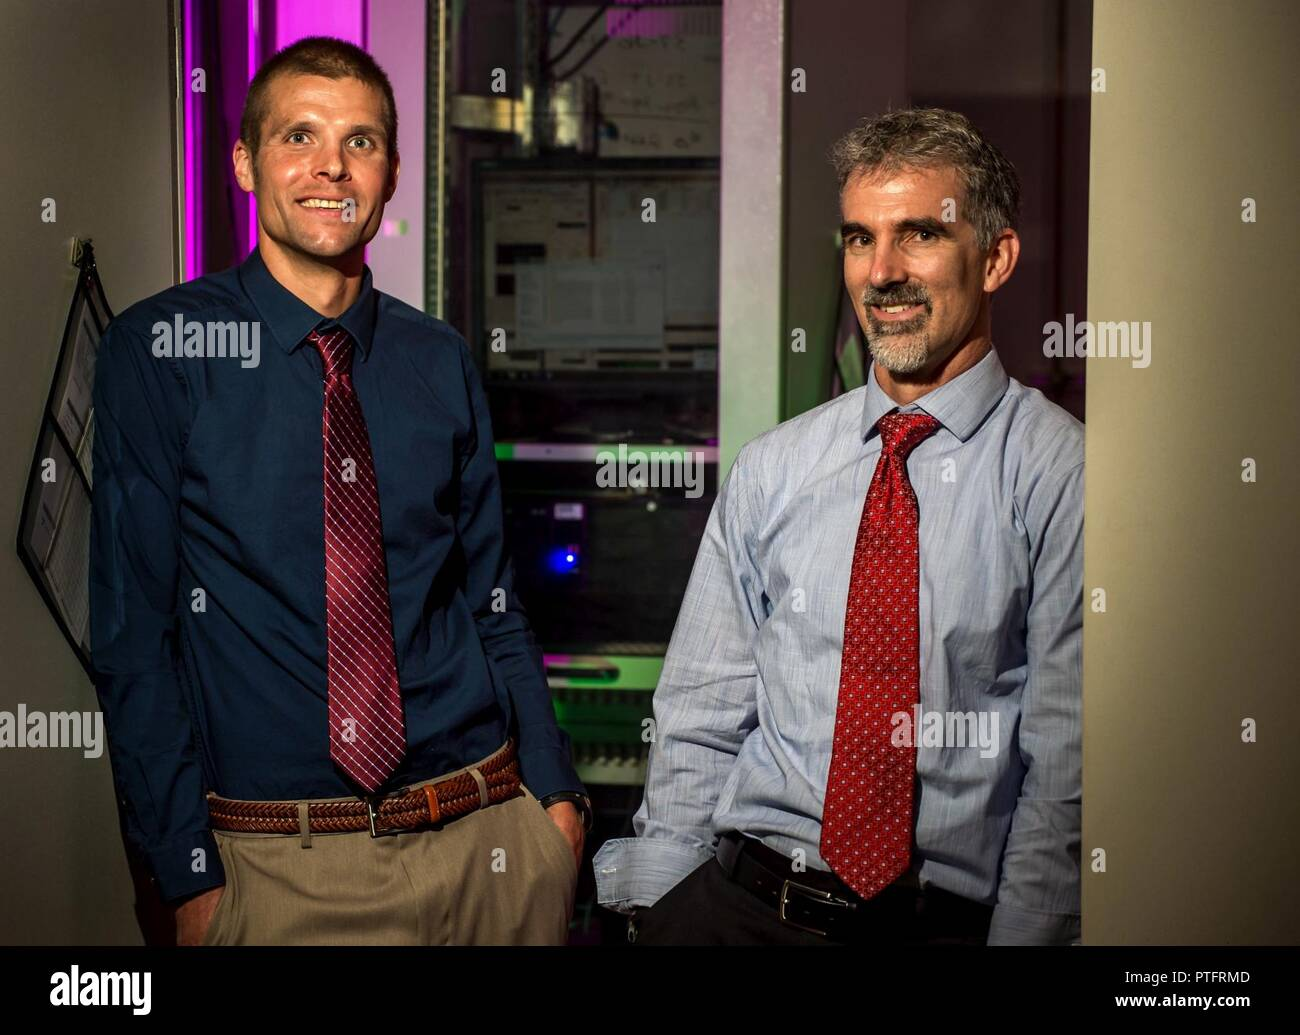 Ed Alyanak, an engineer, and Greg Reich, a research team lead with the Aerospace Systems Directorate at the Air Force Research Laboratory at Wright Patterson Air Force Base in Dayton, Ohio, believe that future technological advances will allow Airmen to 3-D print needed equipment or weapons within the area of operations. Utilizing effectiveness-based design, where operational analysis assessment is combined with computational design, combined with the development of large-scale, multiple-material 3-Dimensional printing could circumvent the current method of procuring military assets. - Stock Image